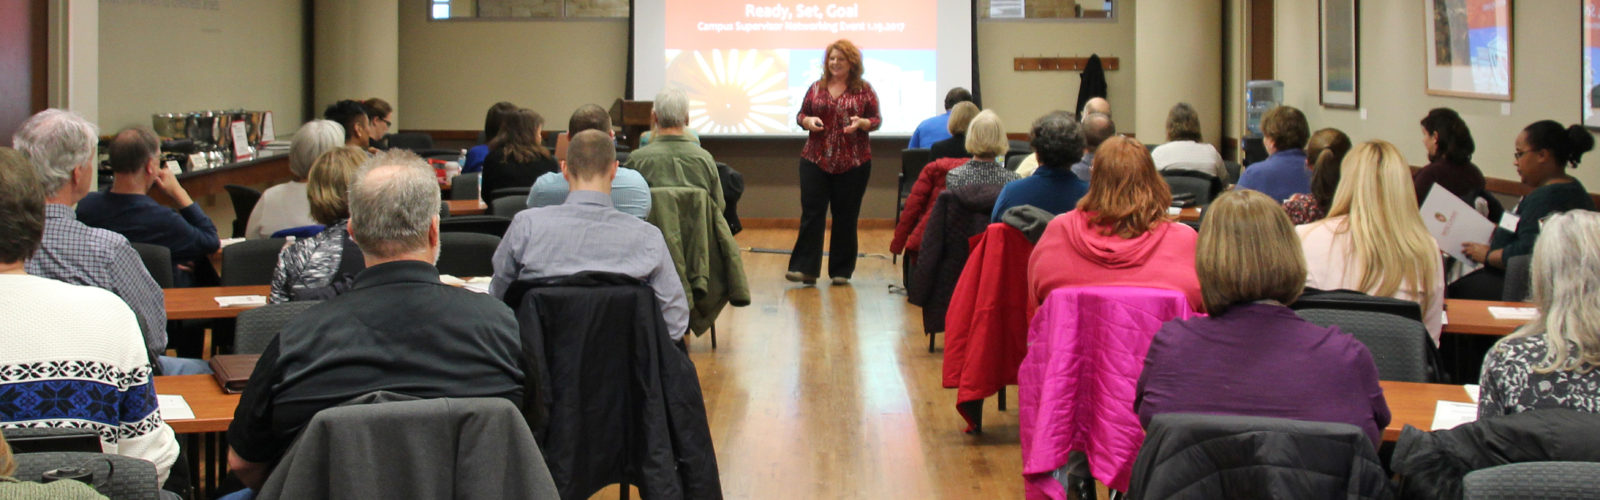 Shelly speaking at a session.